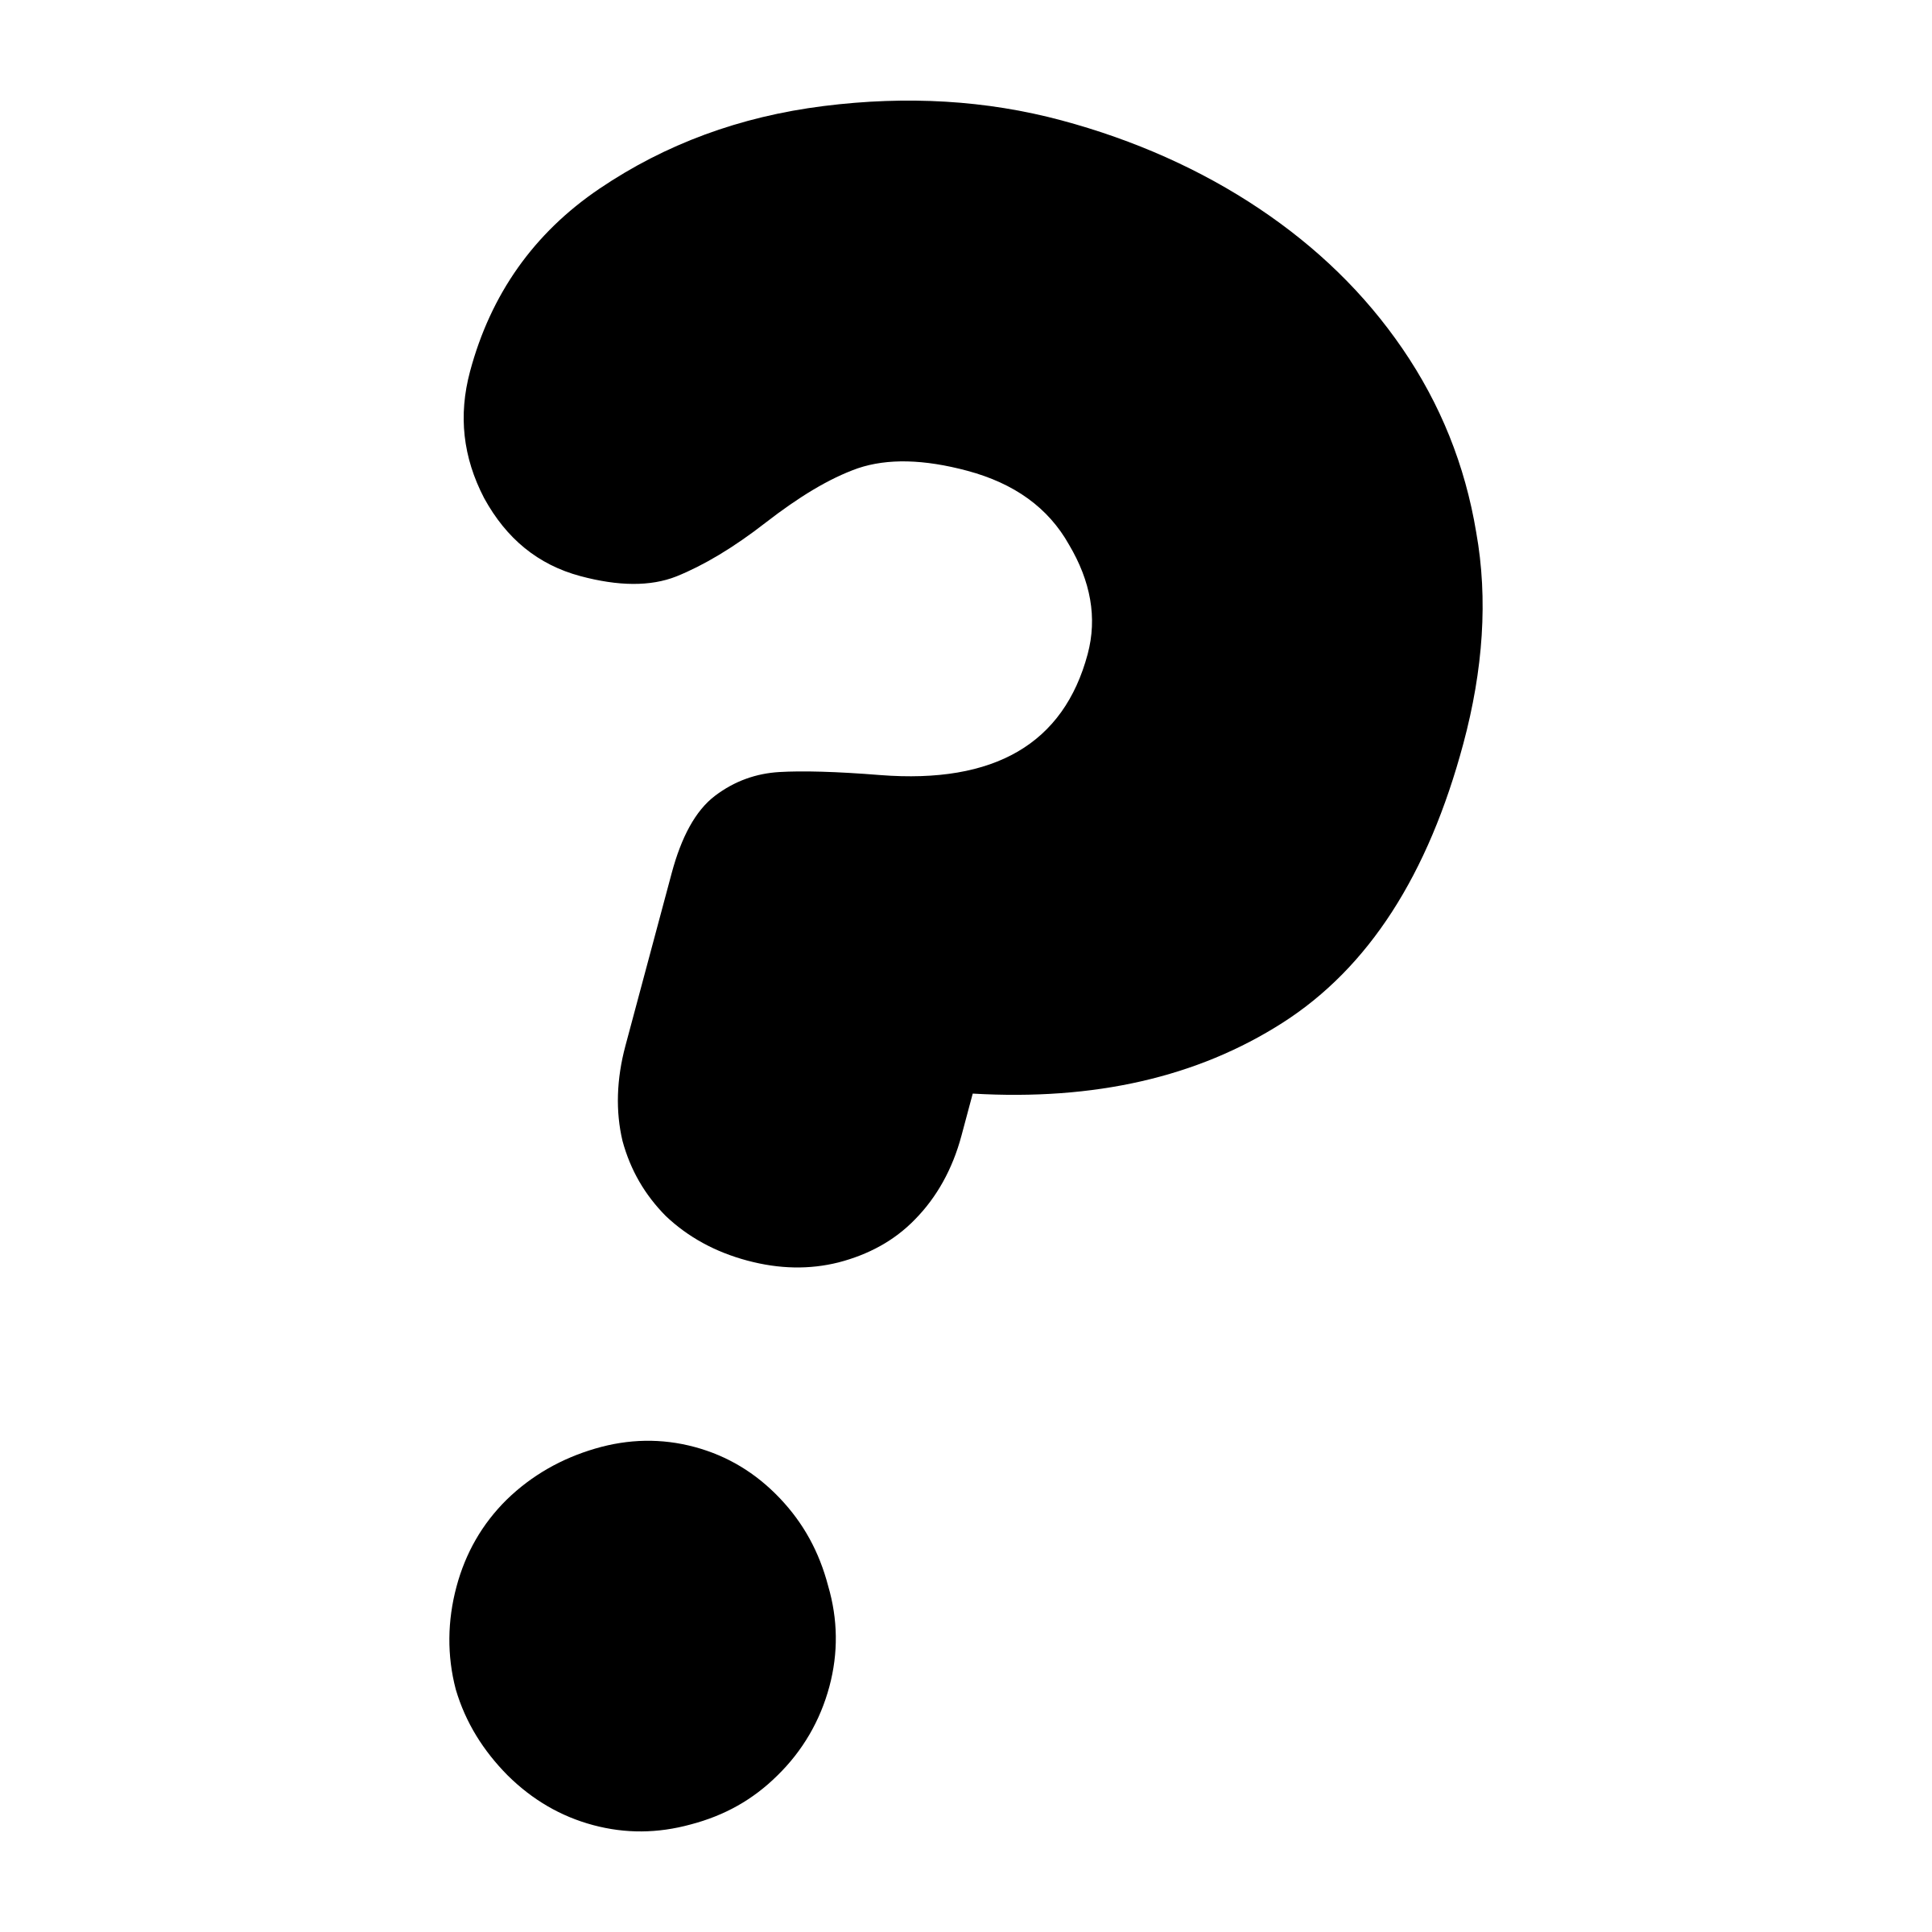 Printable question mark clipart 2 .